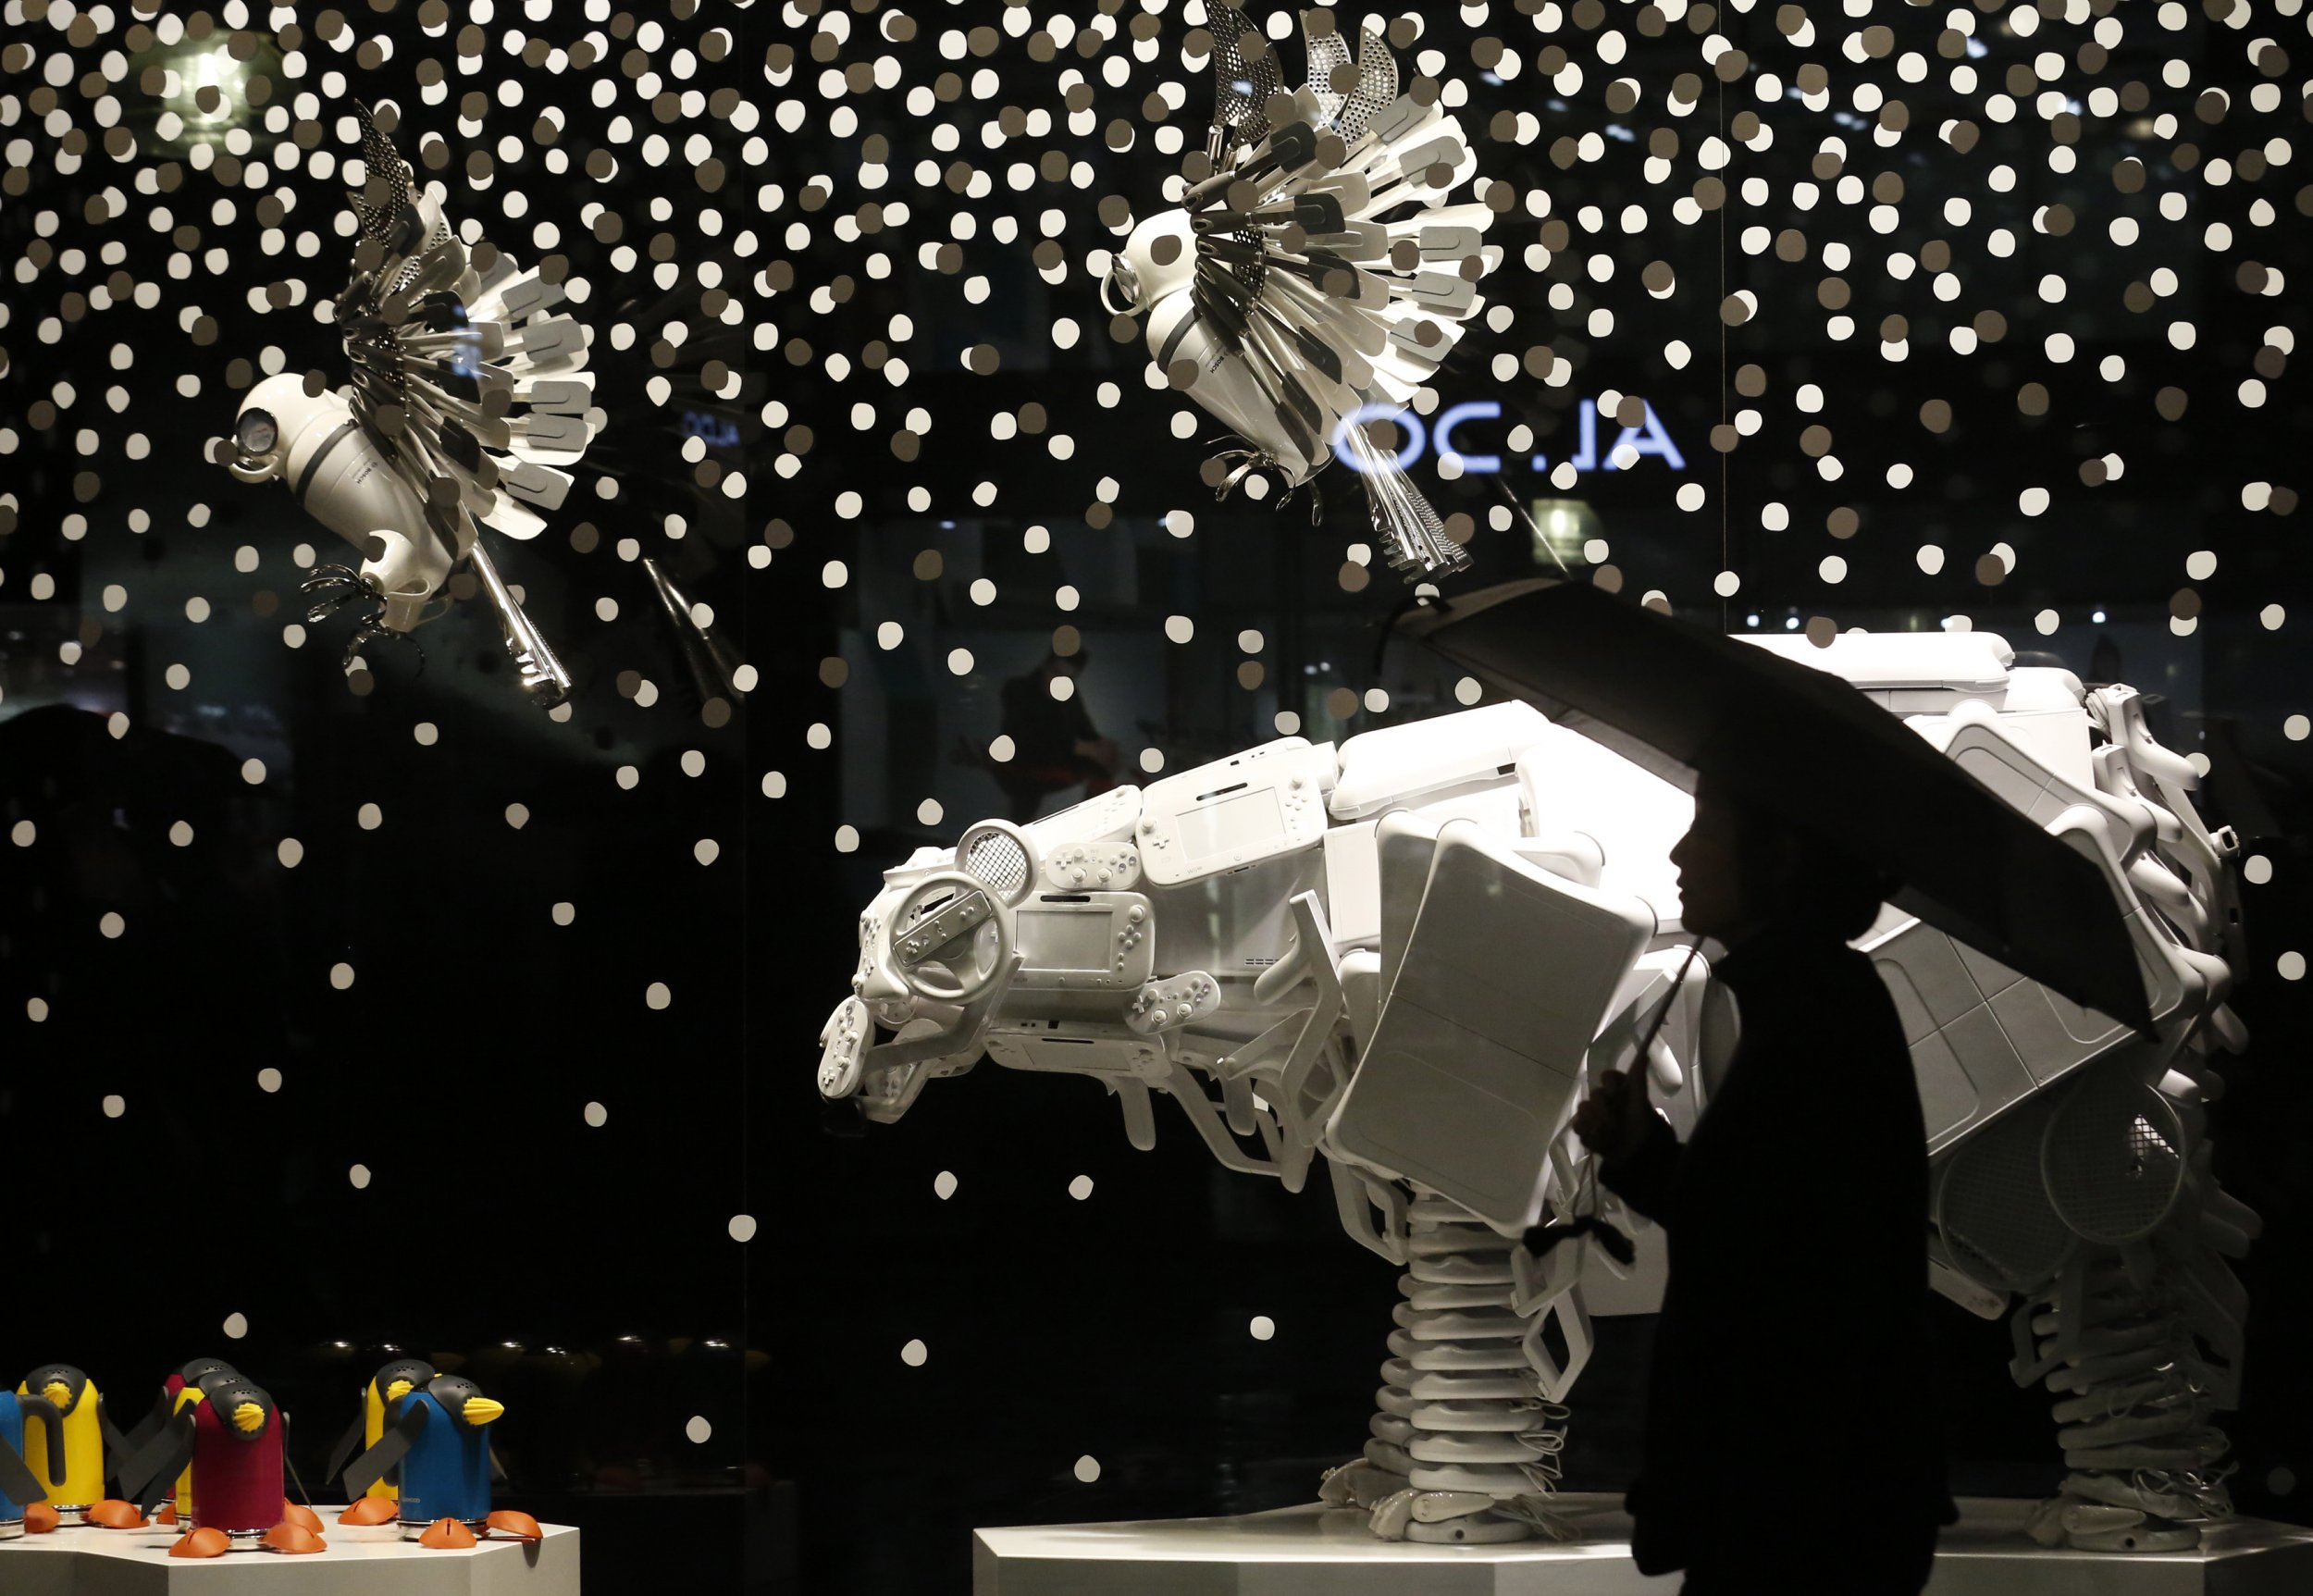 John Lewis Christmas.How John Lewis Ads Have Come To Symbolize Christmas For The